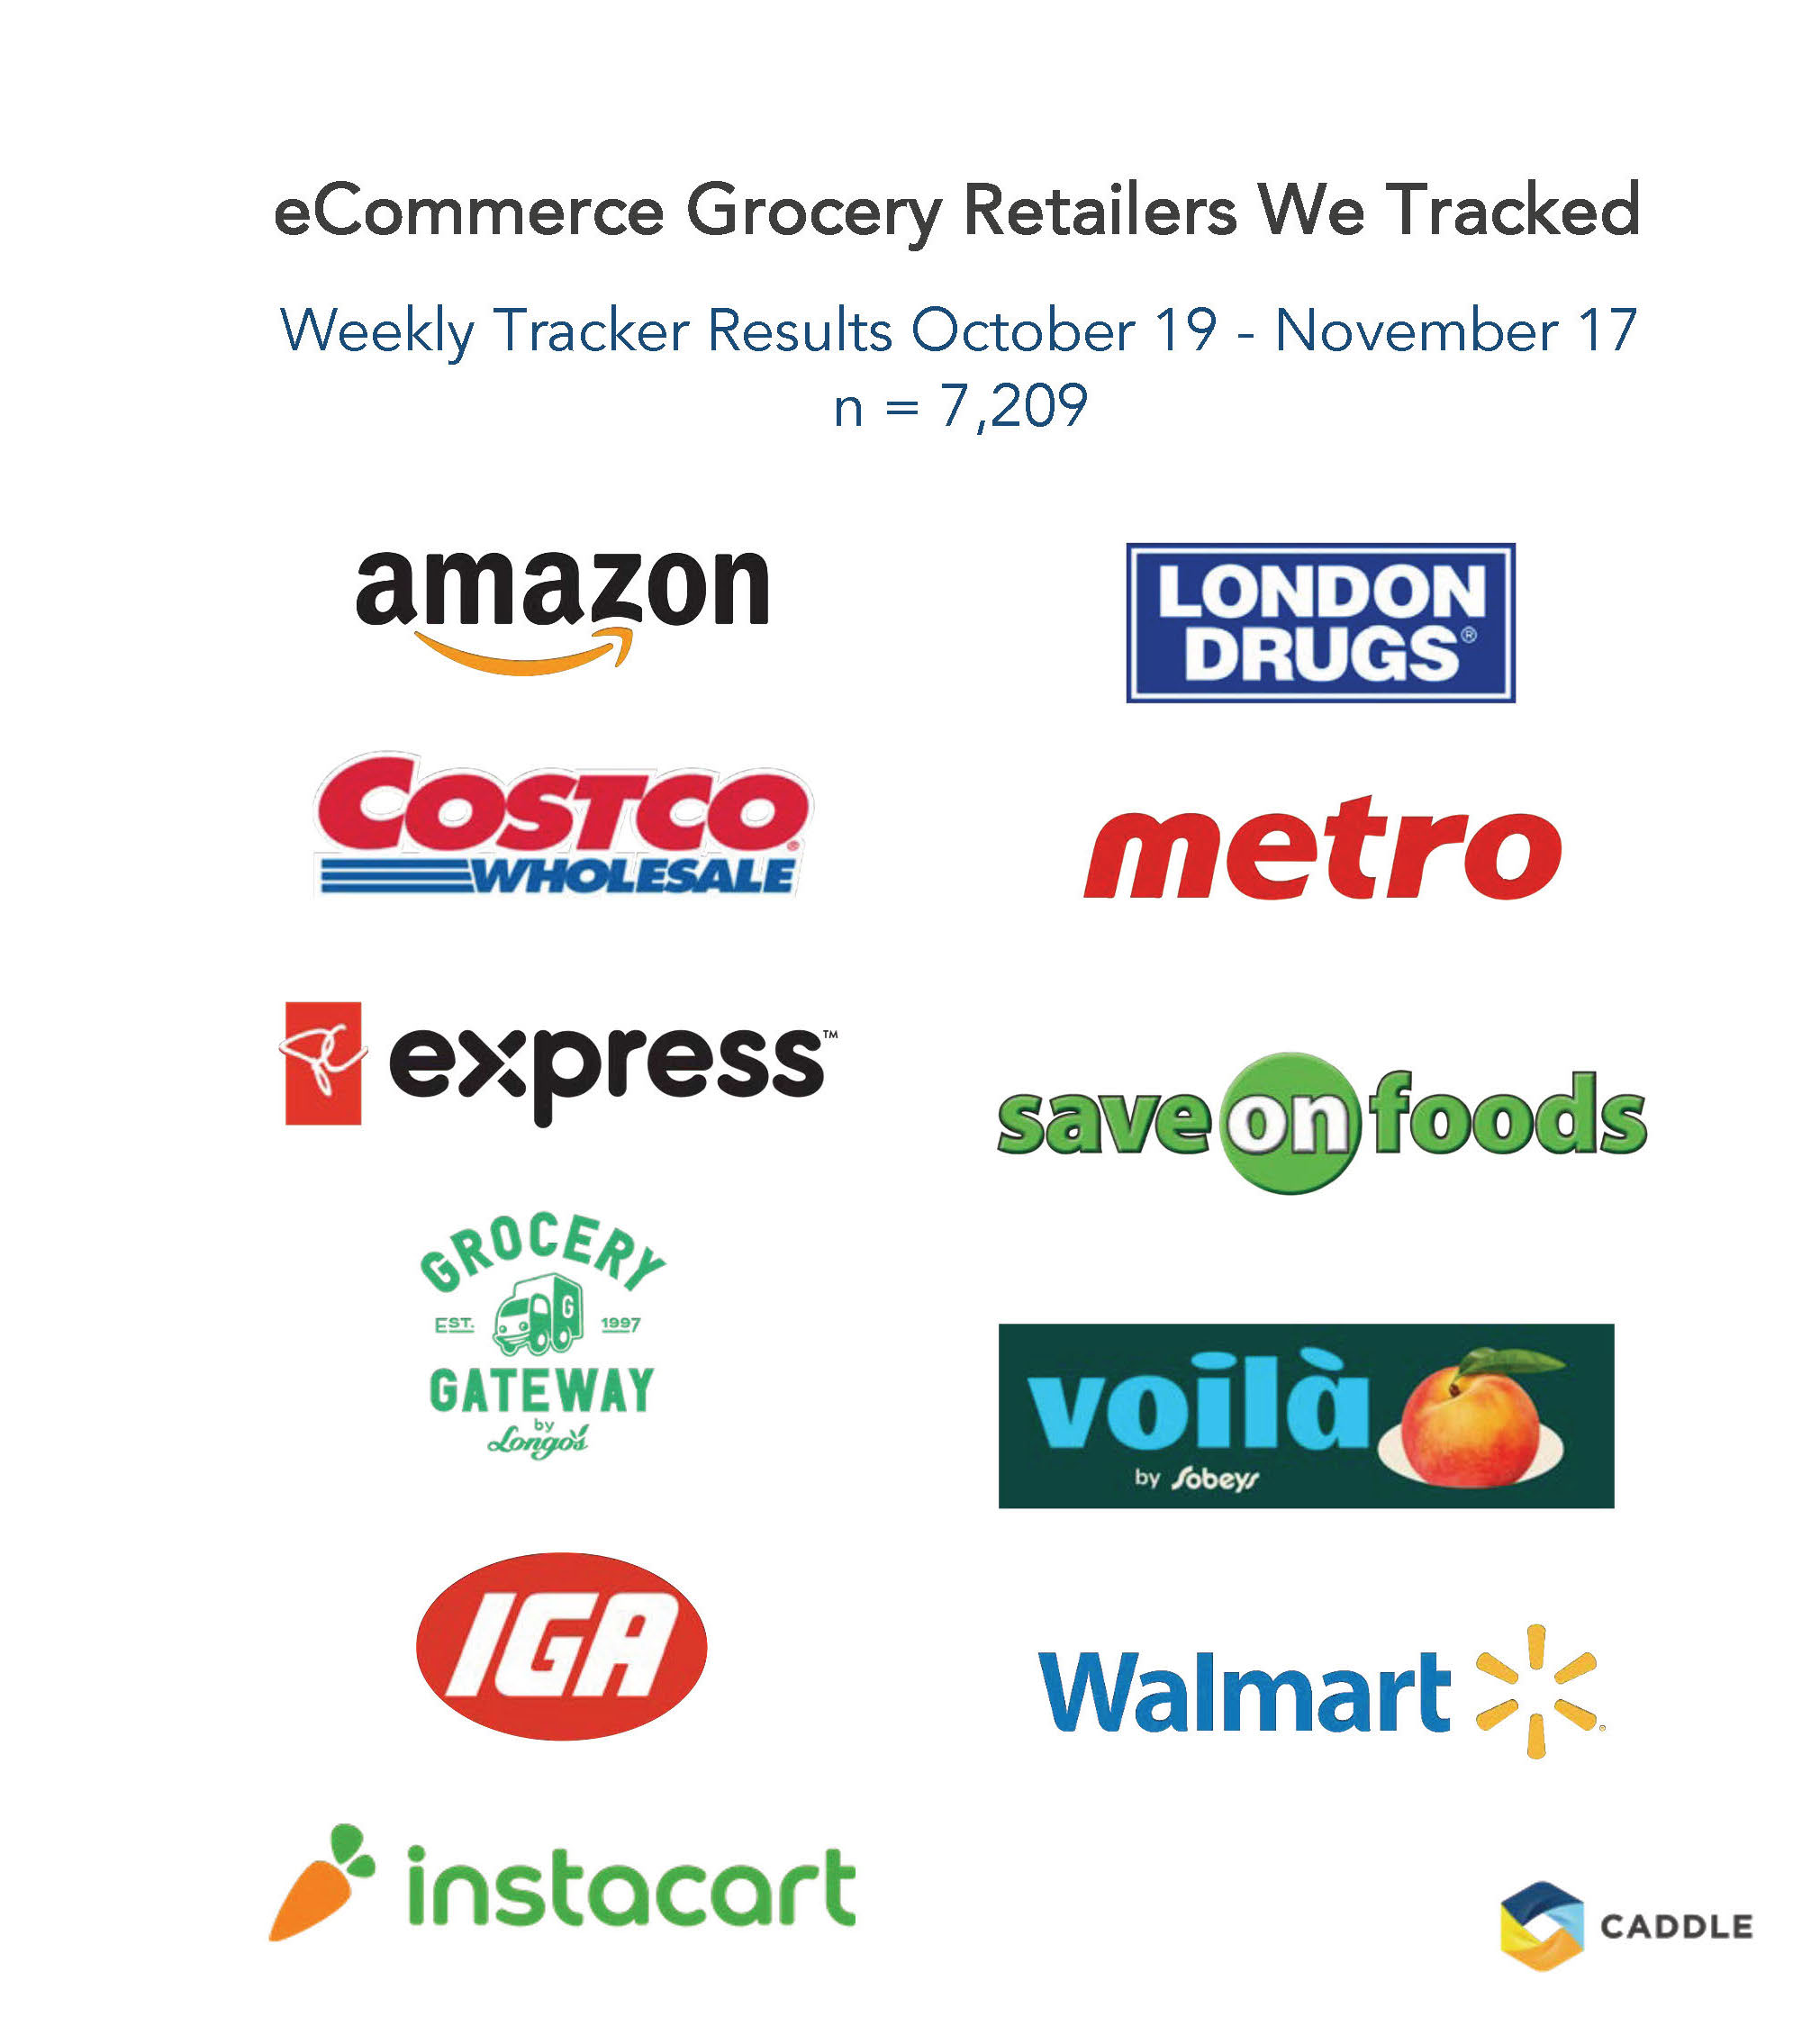 Caddle Grocery eCommerce CX Report Q4 2020 5